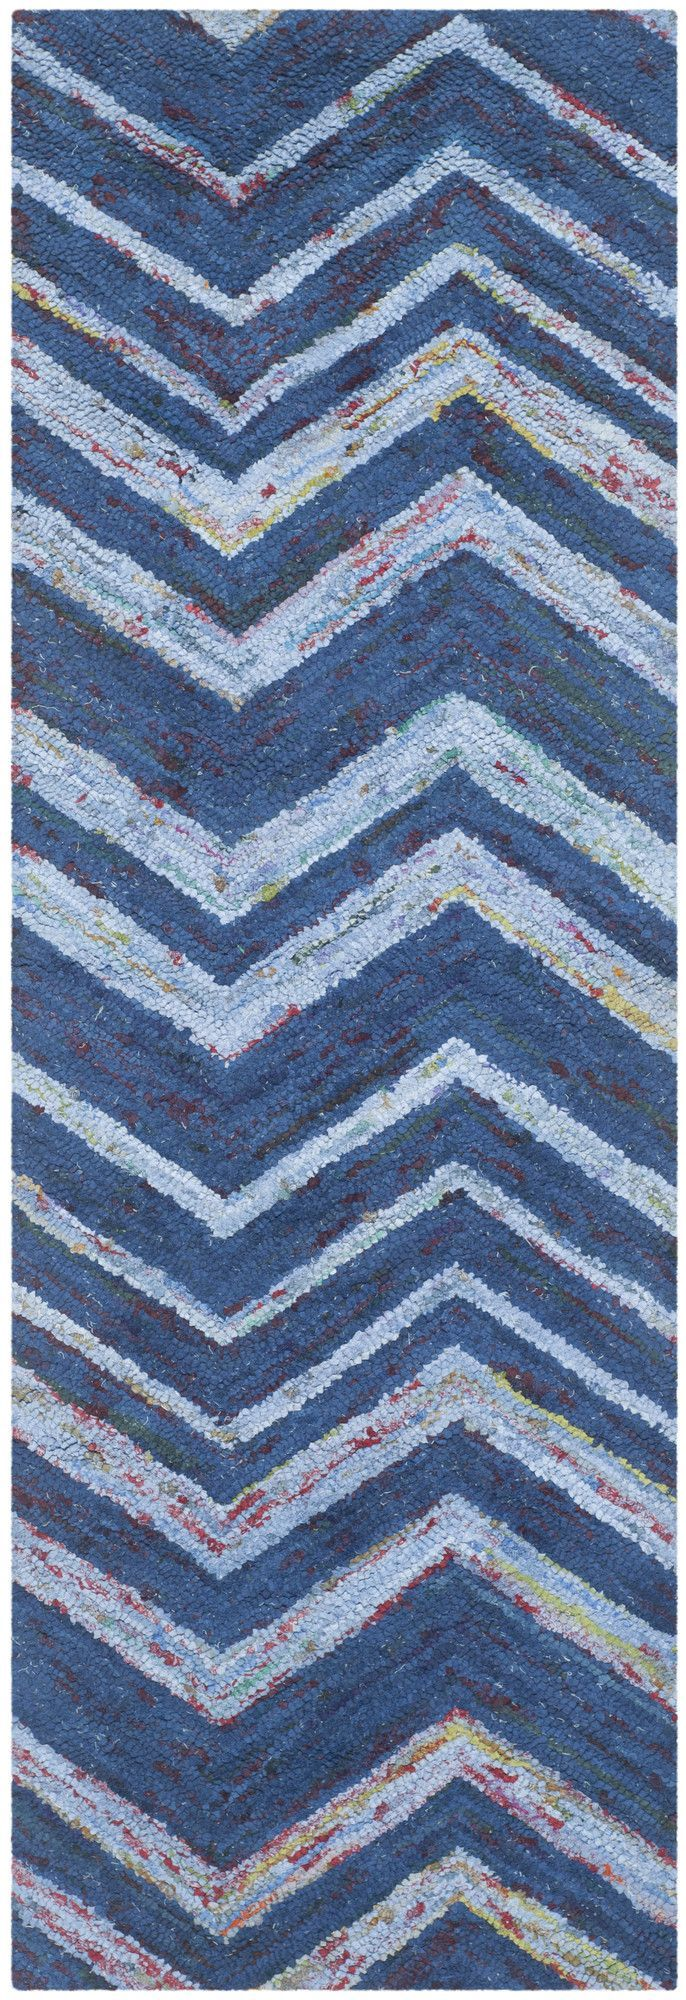 Features:  -Construction: Handmade.  -Technique: Tufted.  Technique: -Hand woven/Tufted.  Primary Color: -Blue.  Material: -Cotton.  Product Type: -Area Rug.  Rug Shape: -Rectangle. Dimensions: Rug Si